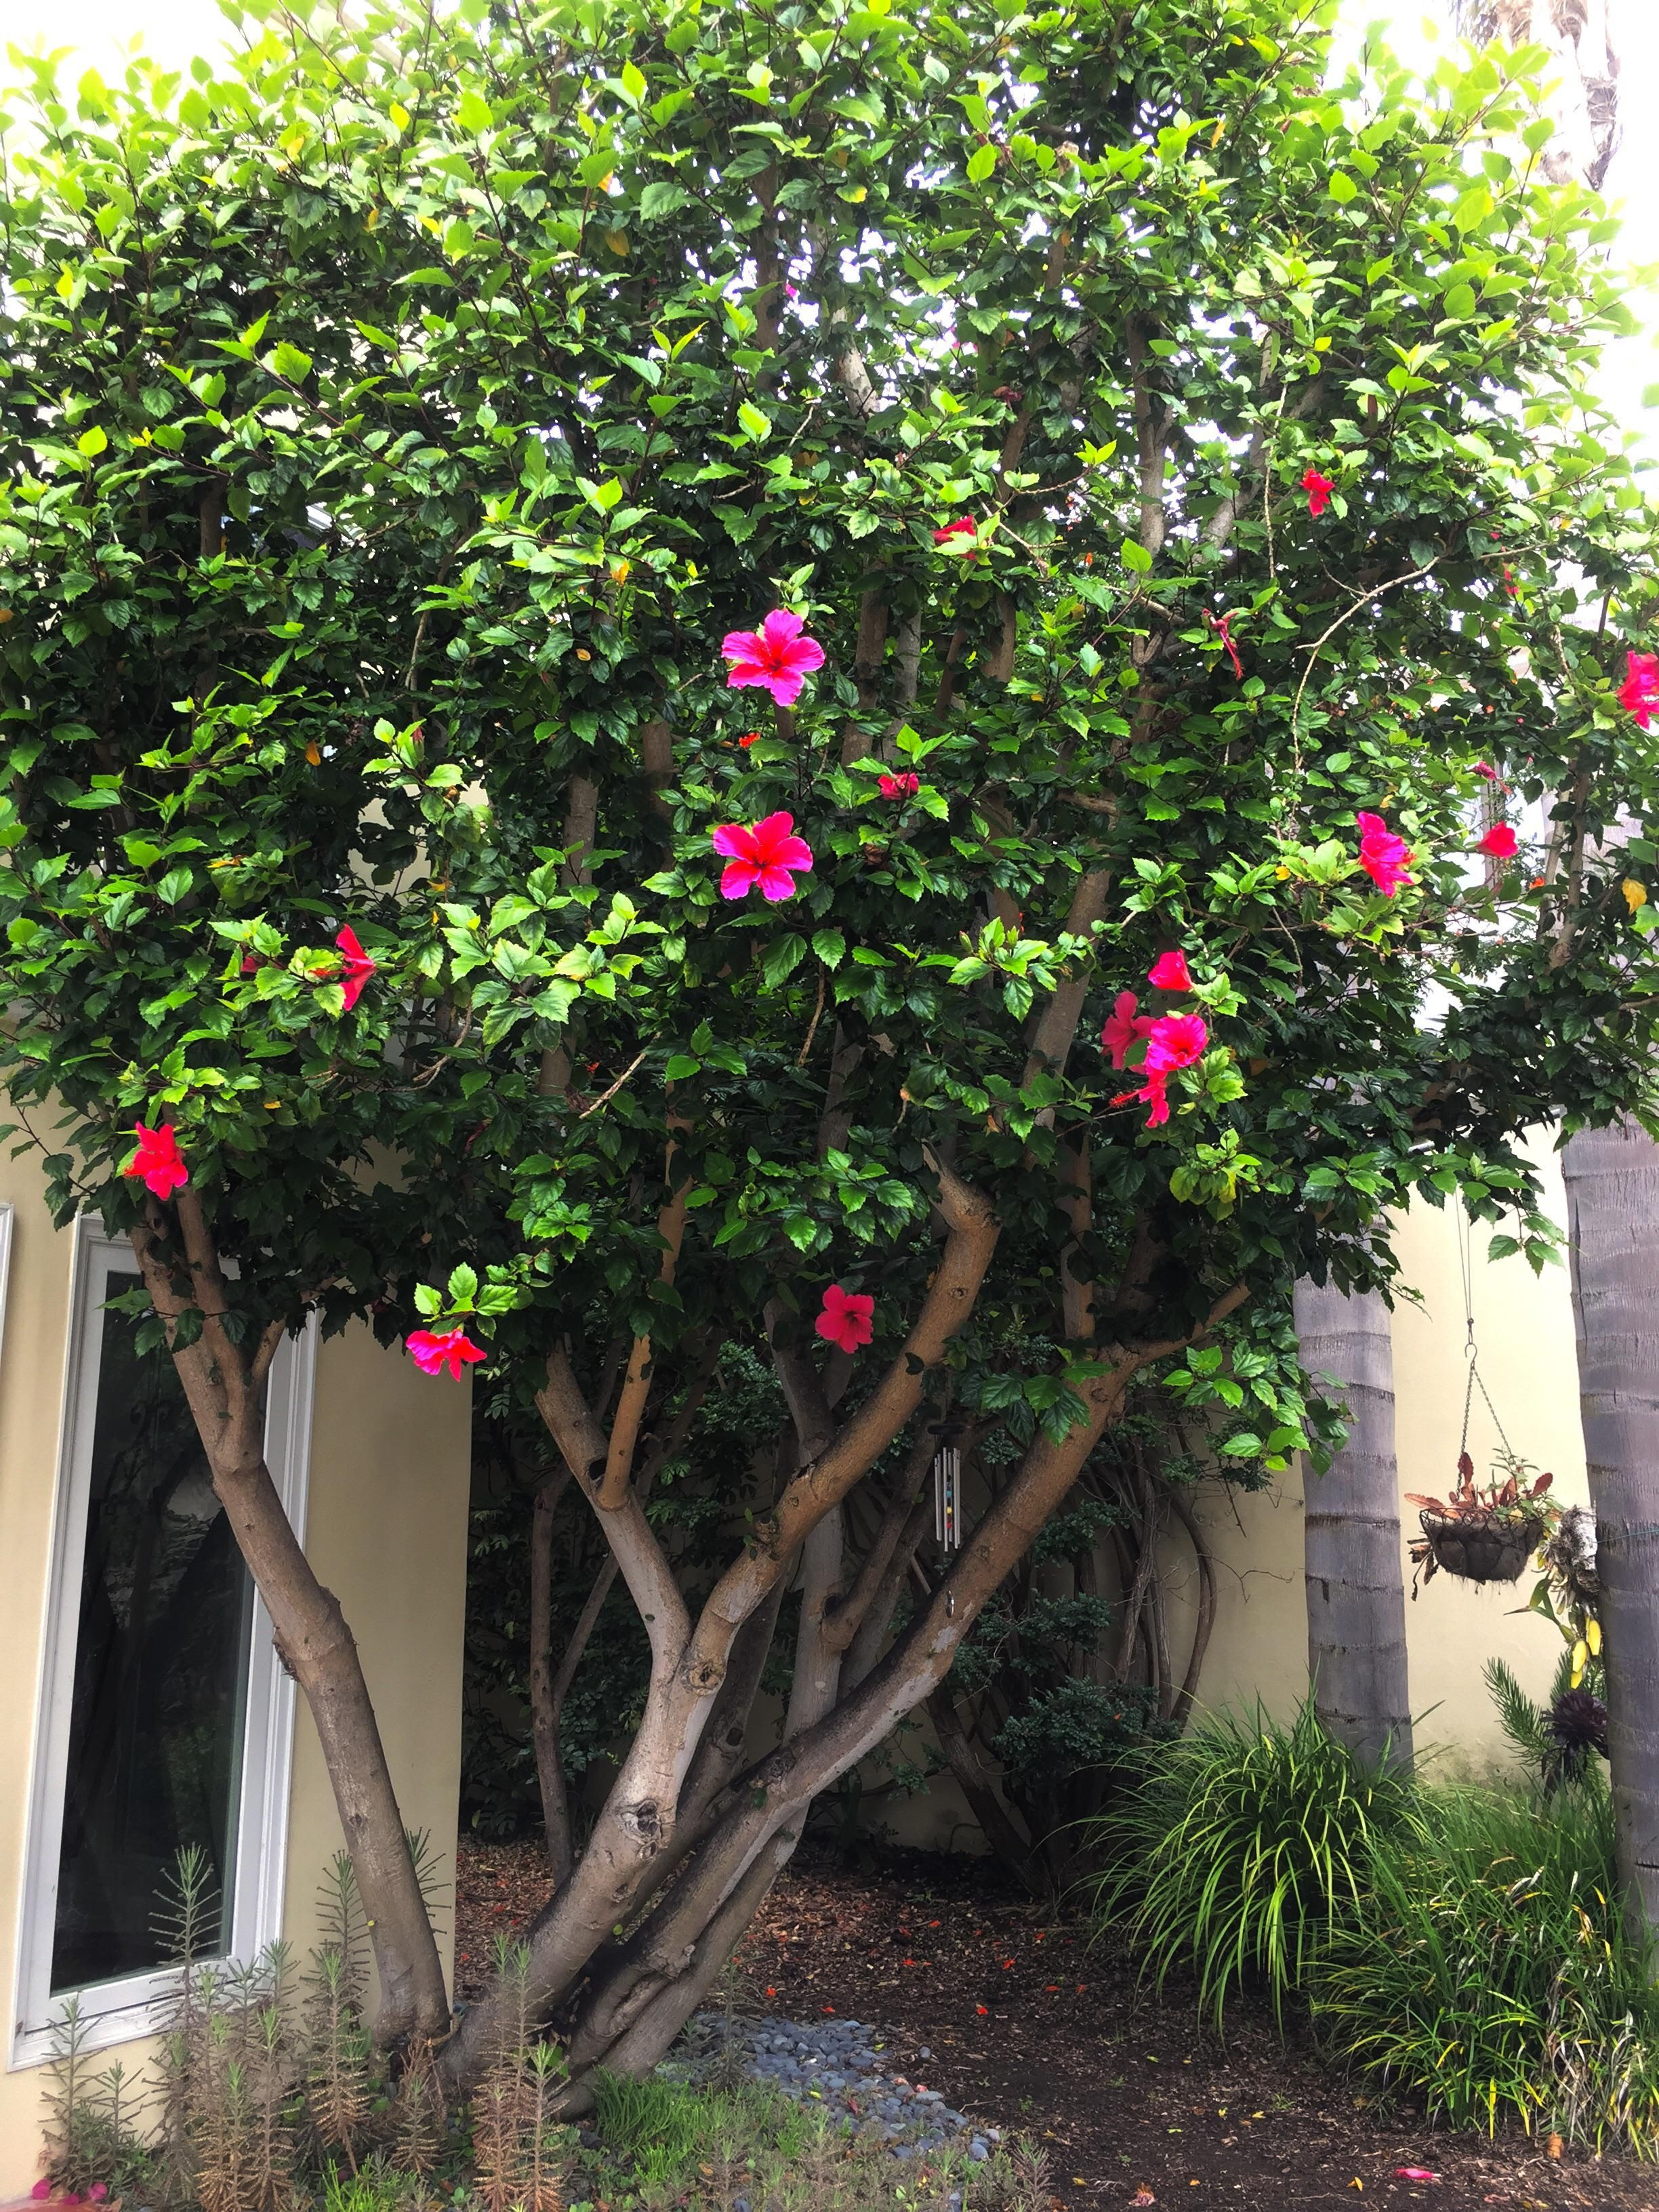 What Species Is My Hibiscus Tree Shes About 25 30 Years Old And